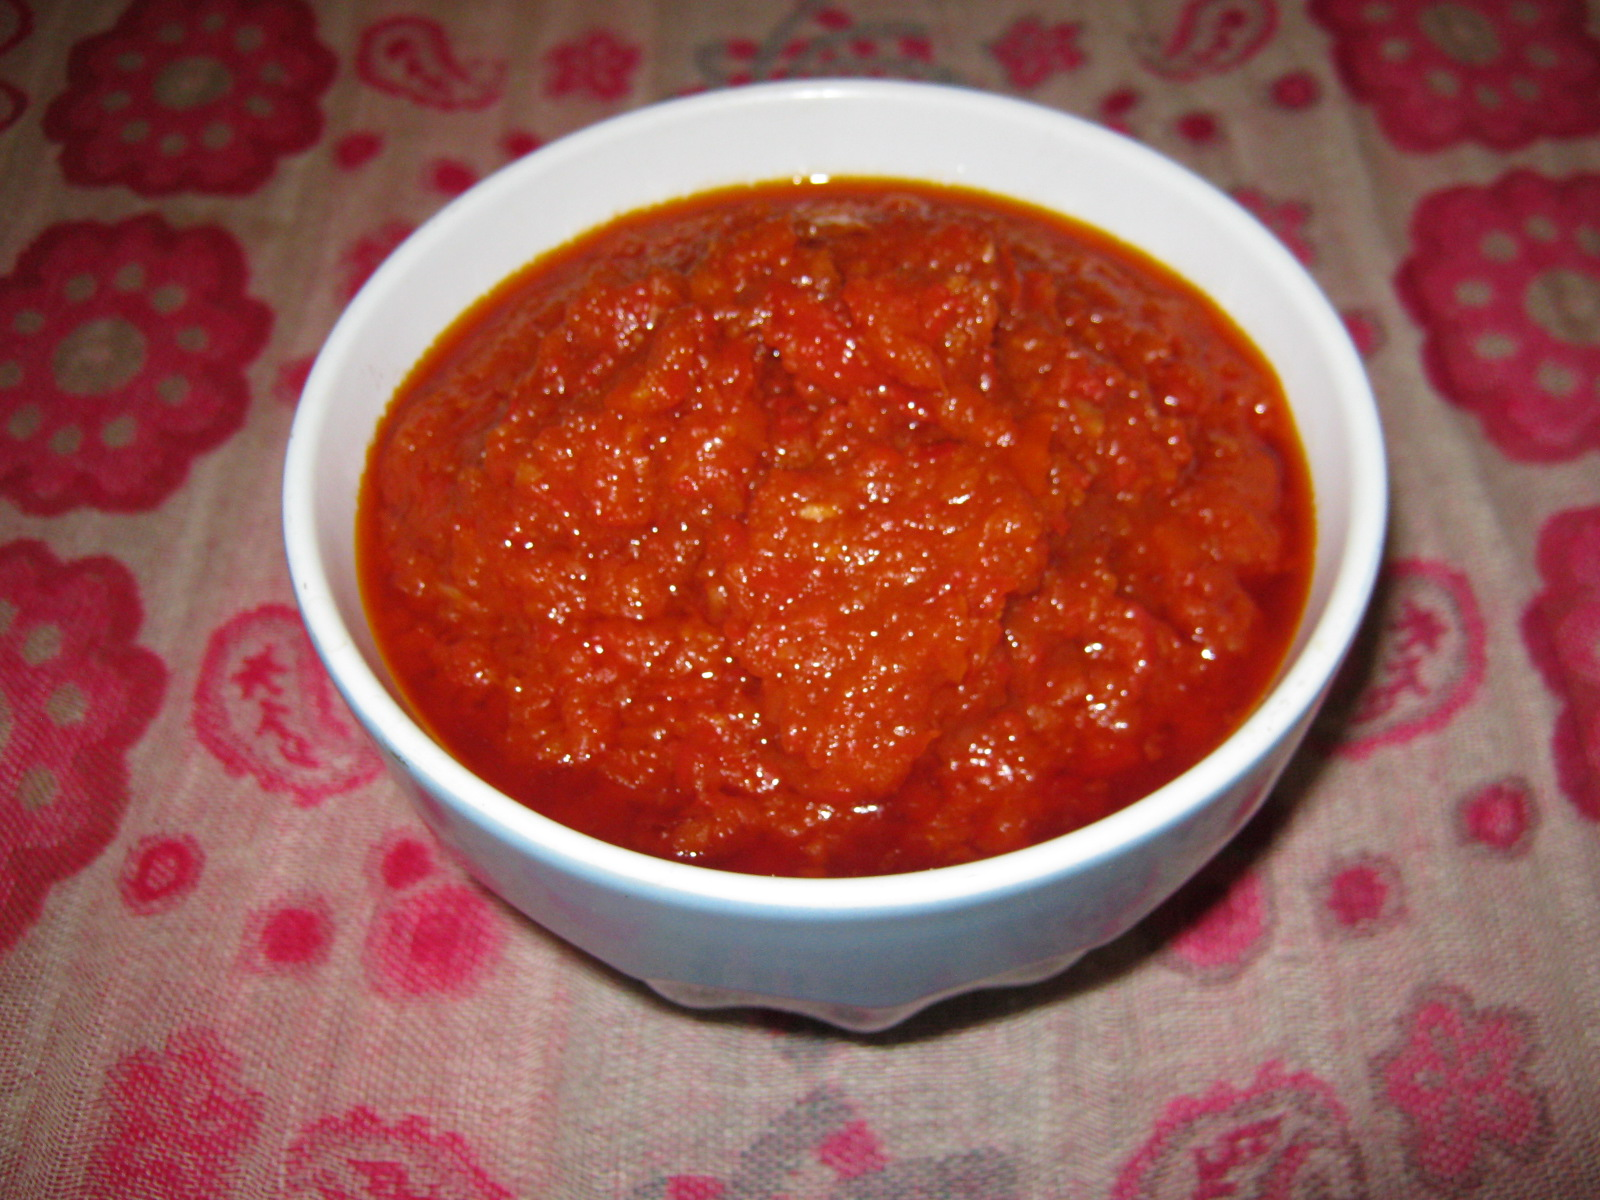 Ata dindin - Hot Nigerian Fried Pepper Sauce